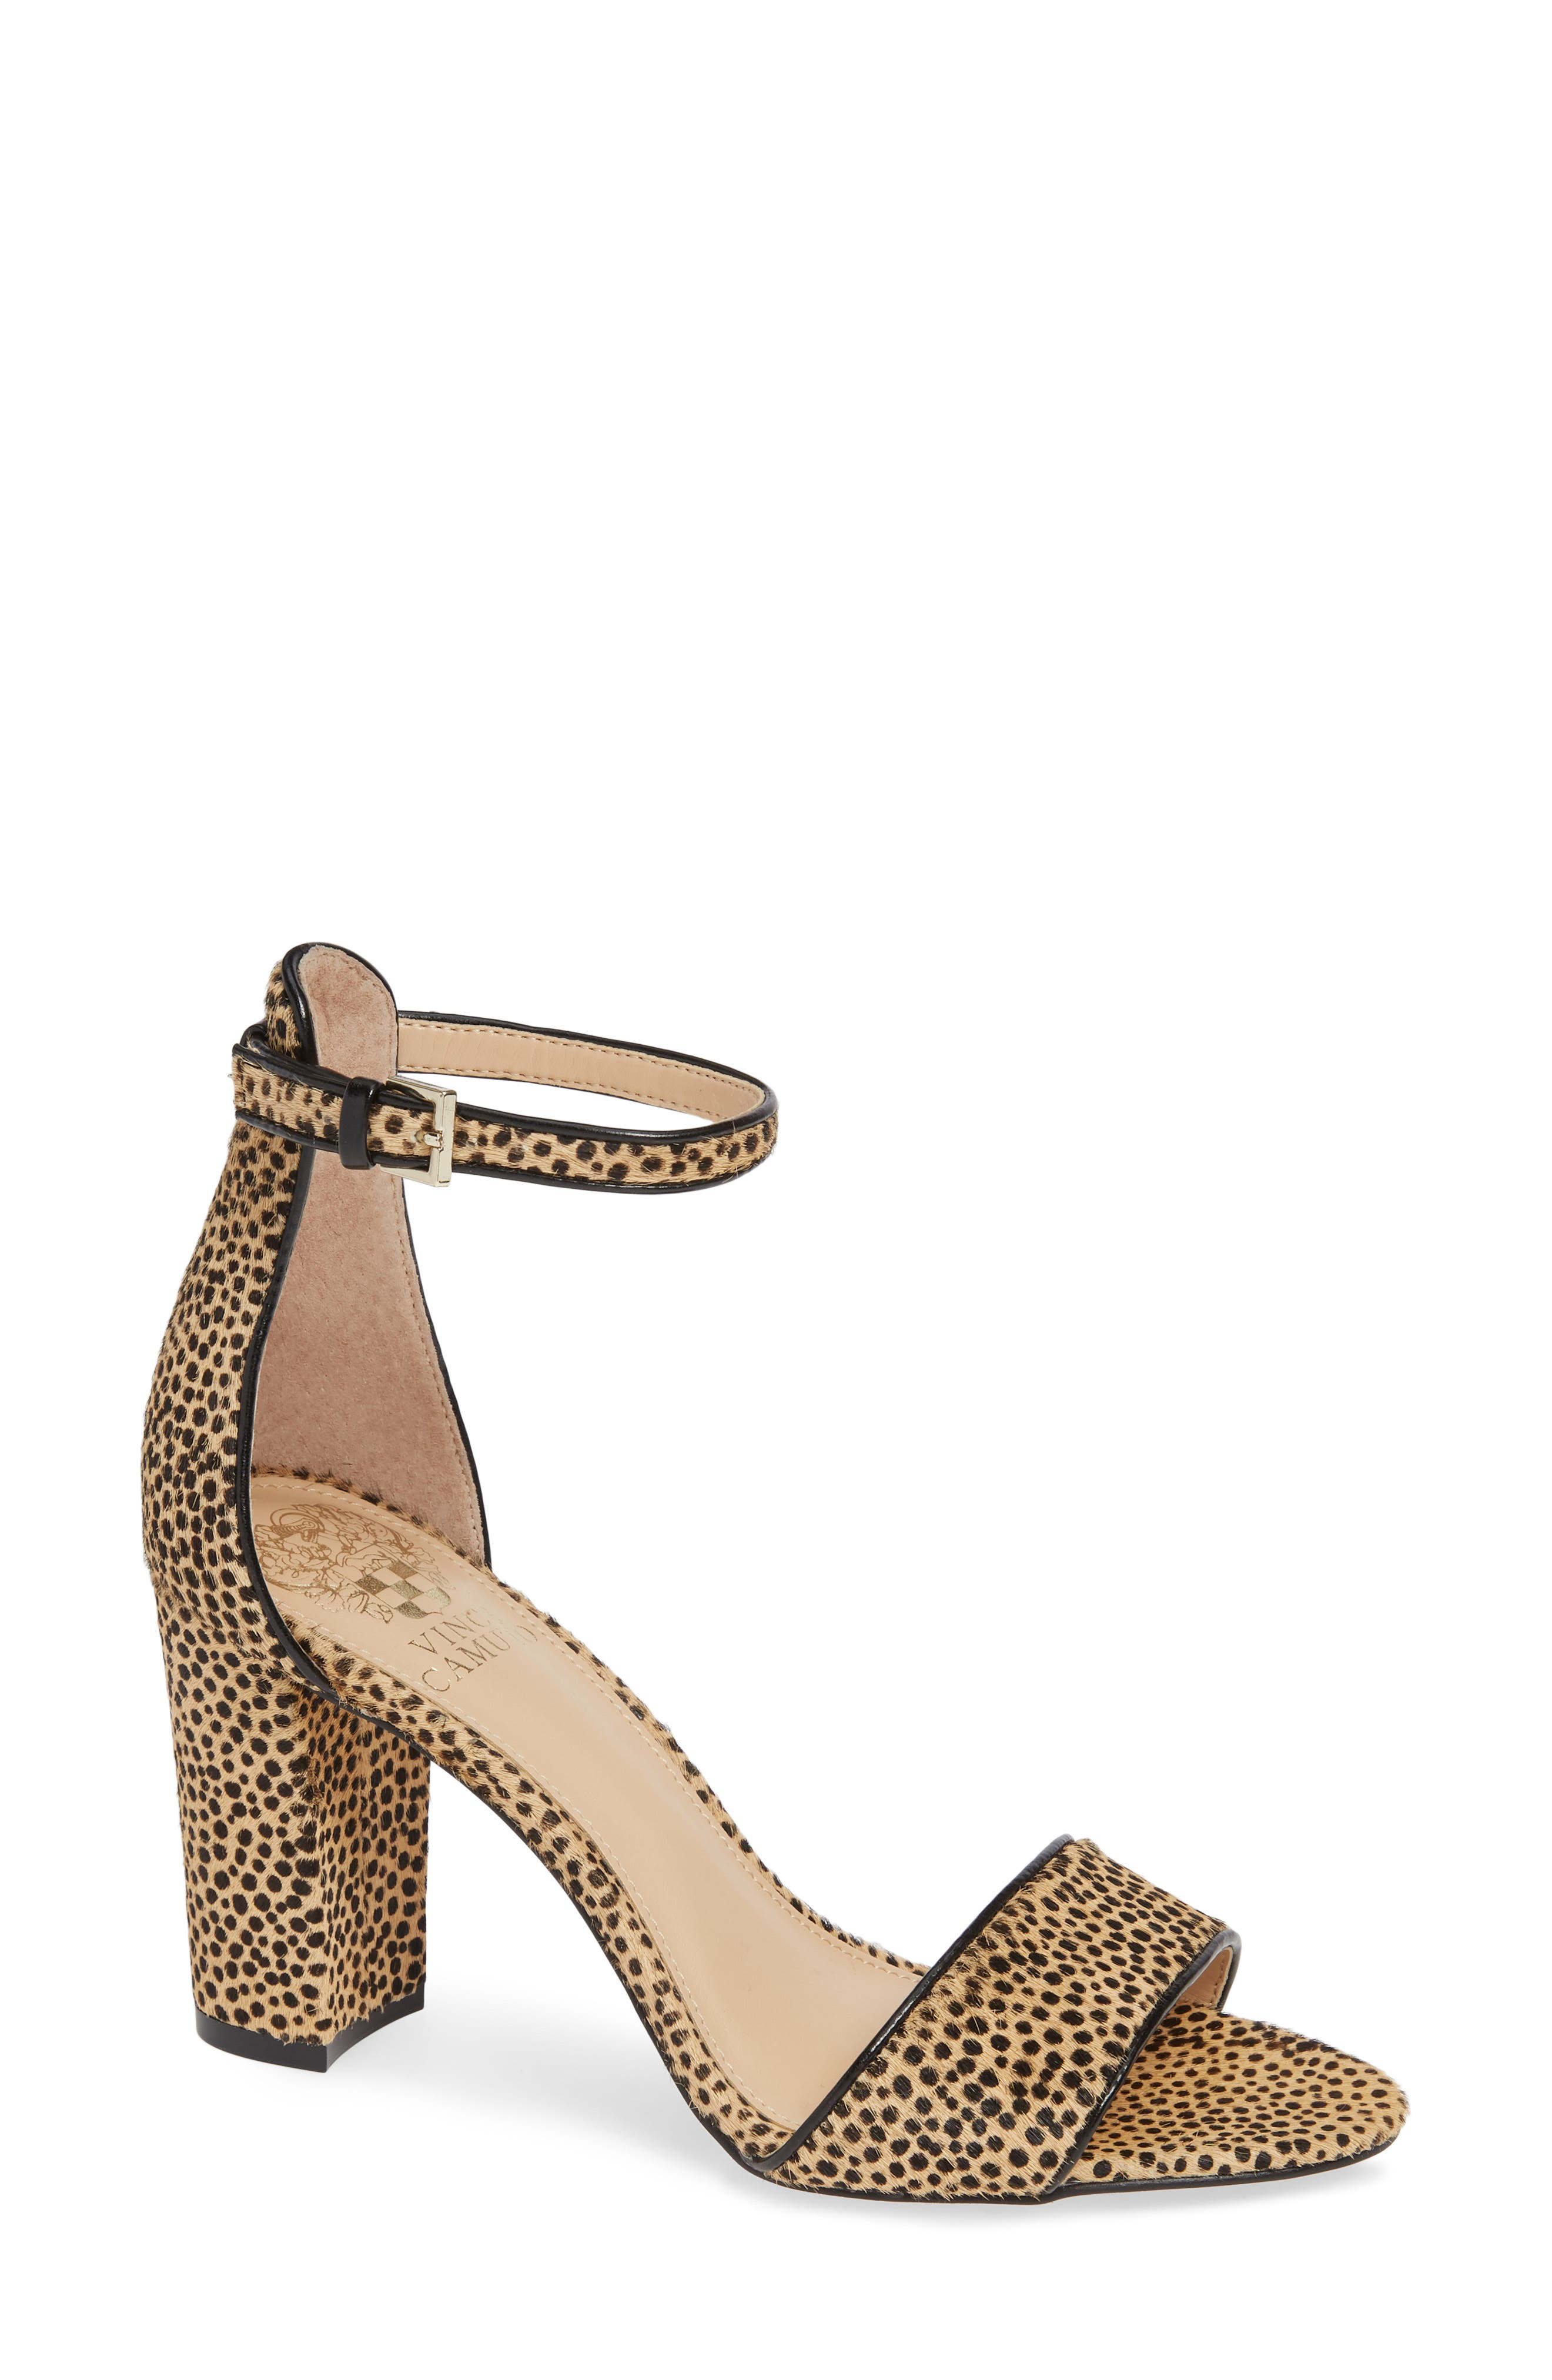 Corlina Genuine Calf Hair Ankle Strap Sandal,                         Main,                         color, NATURAL SPOTTED CALF HAIR